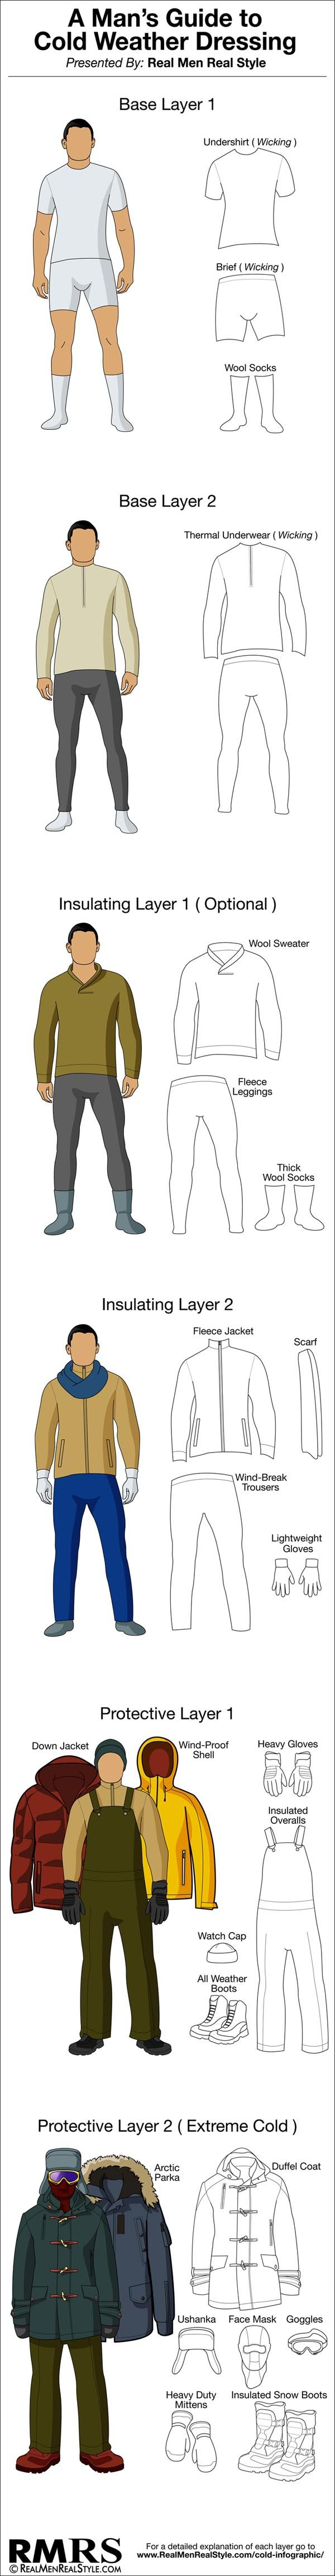 How to dress fashionably in cold weather